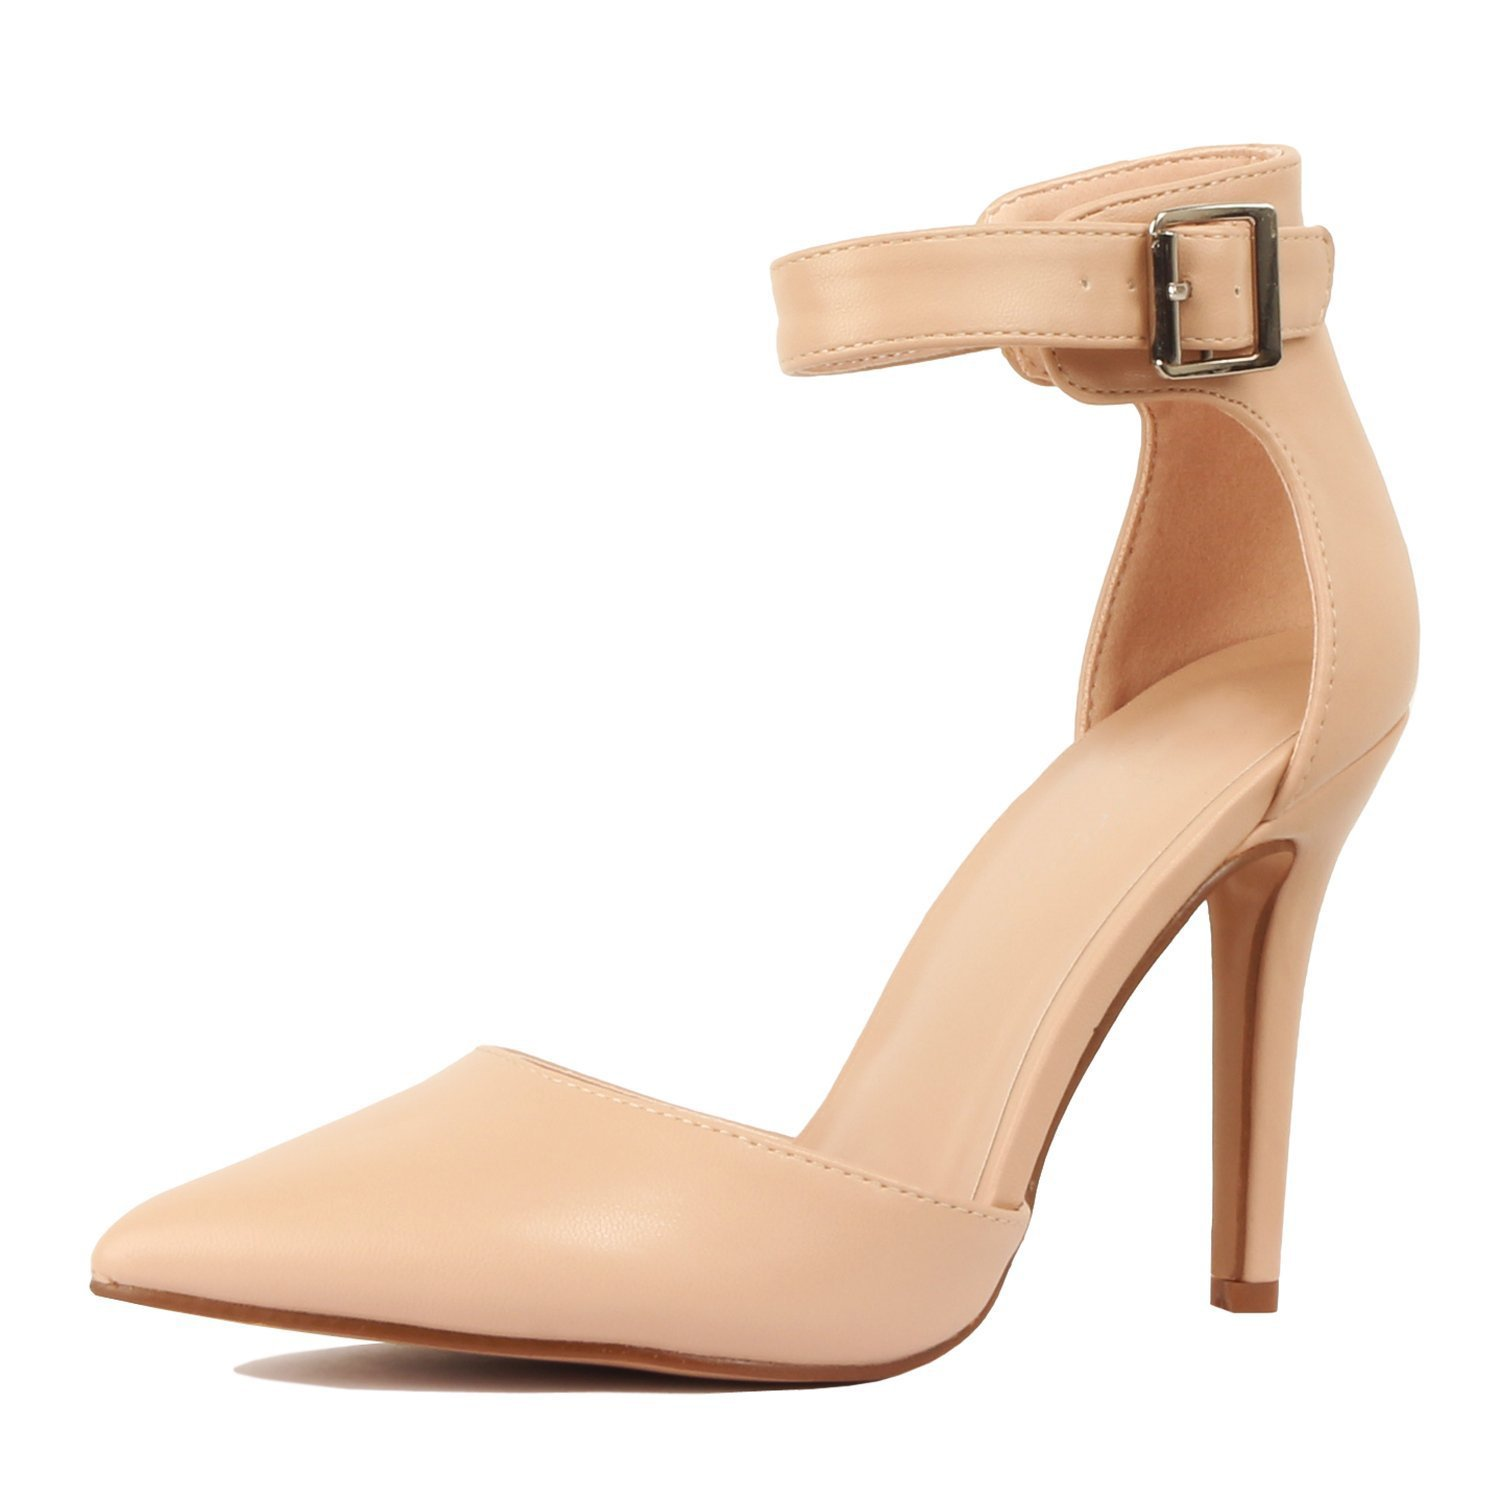 Women's Ankle Strap Stiletto Pumps Pointed Toe Dress D'Orsay High Heel Summer Wedding PU Shoes Nude 7